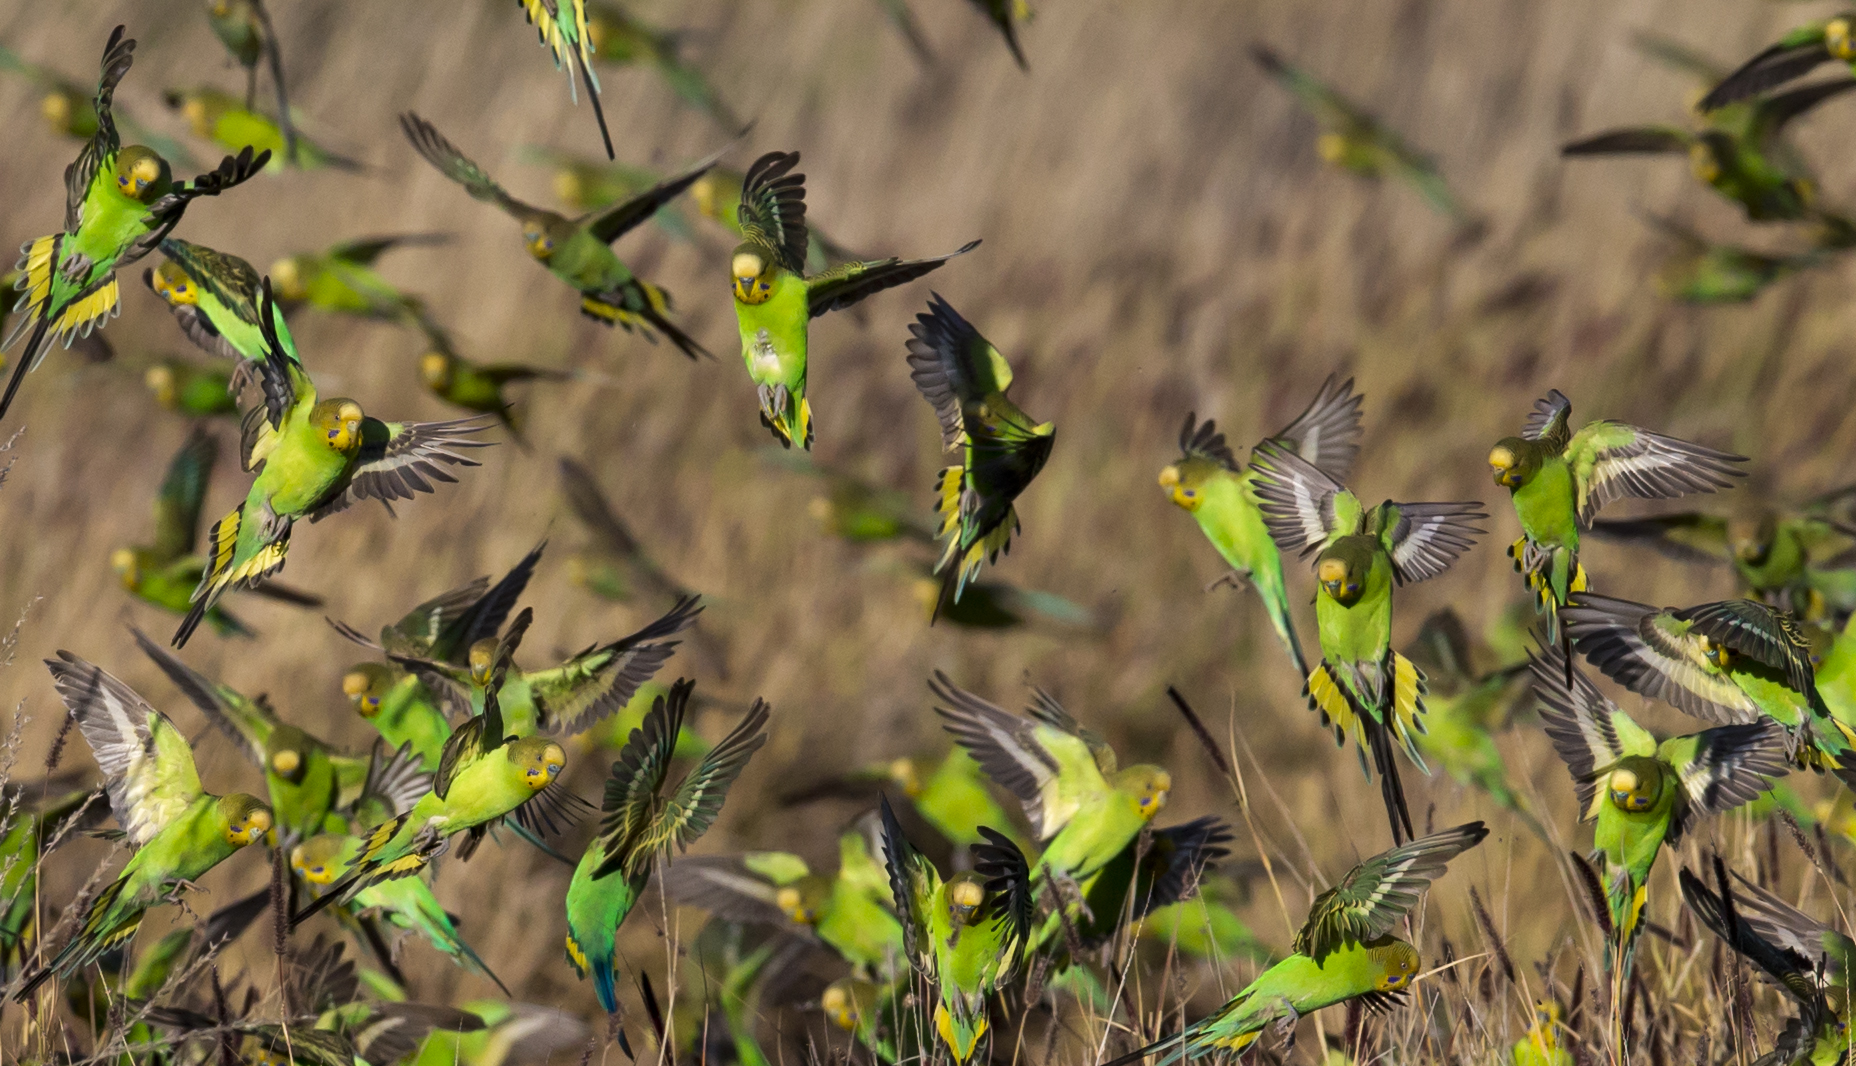 Wild budgies foraging